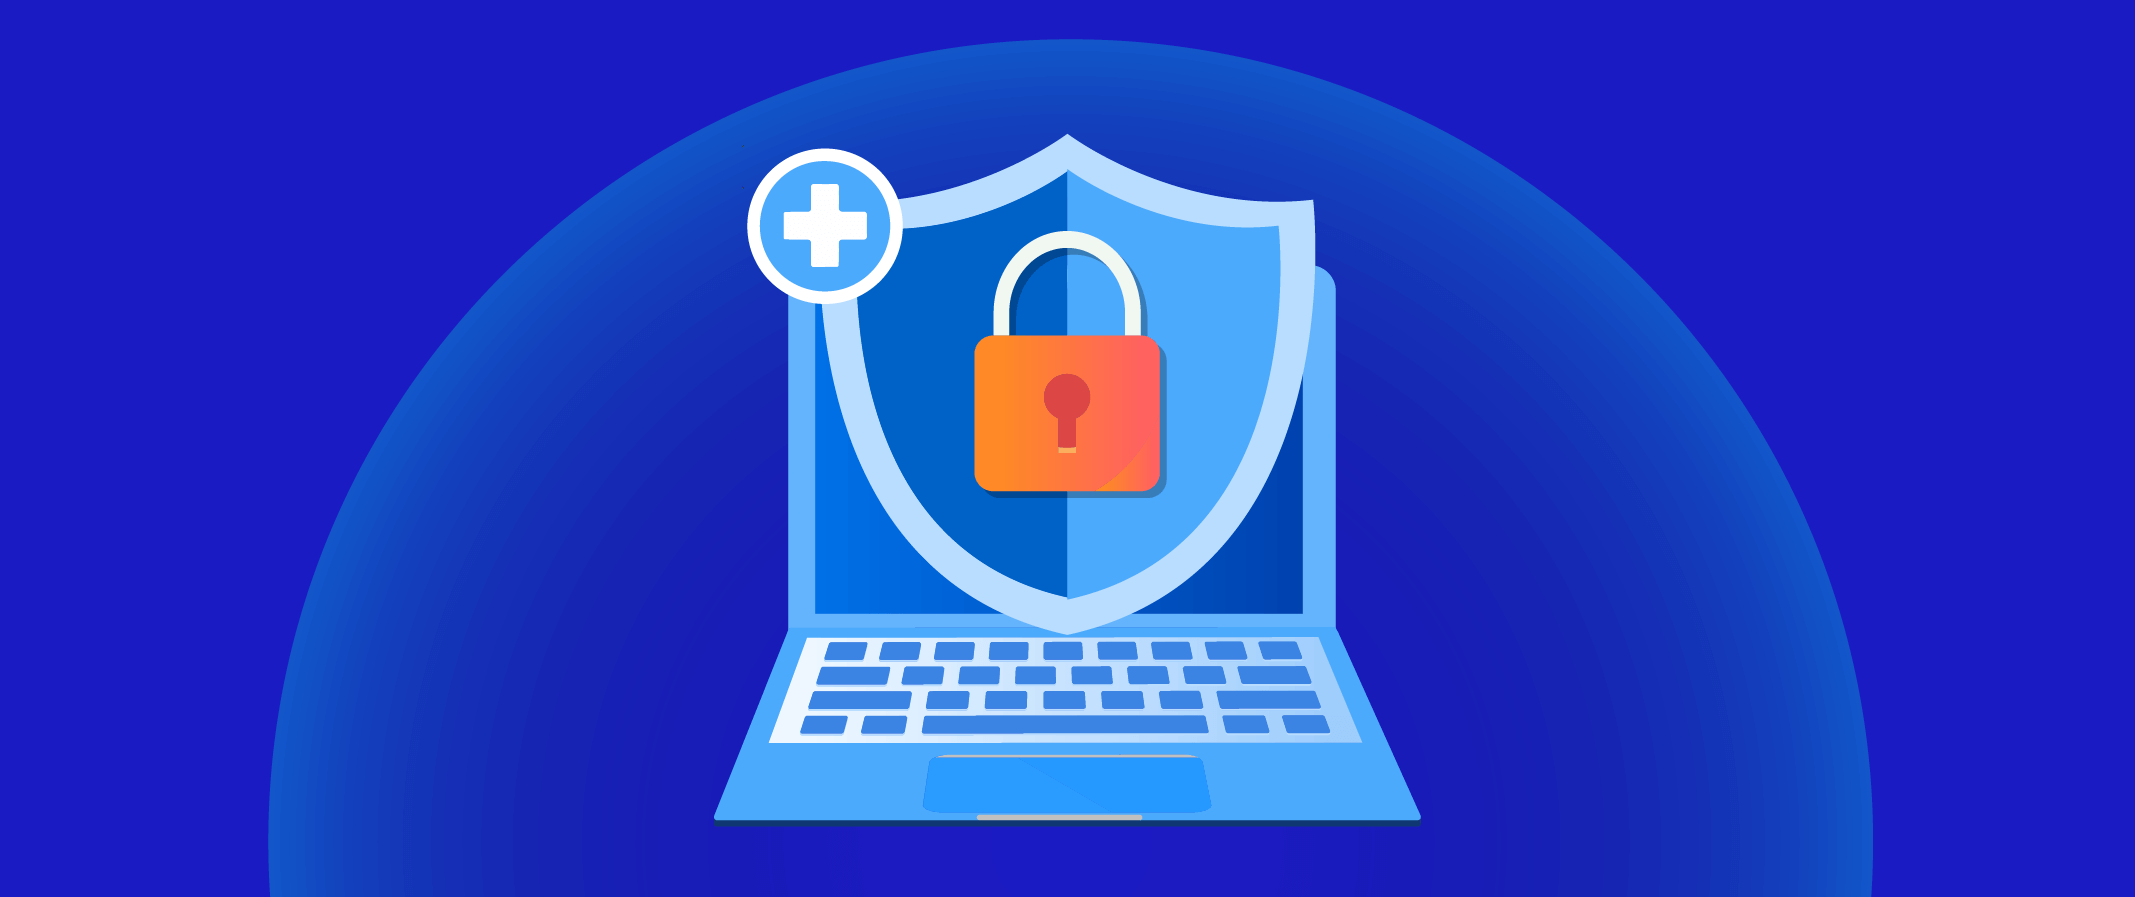 CleverTap Prioritizes Data Safety and Security with HIPAA Compliance